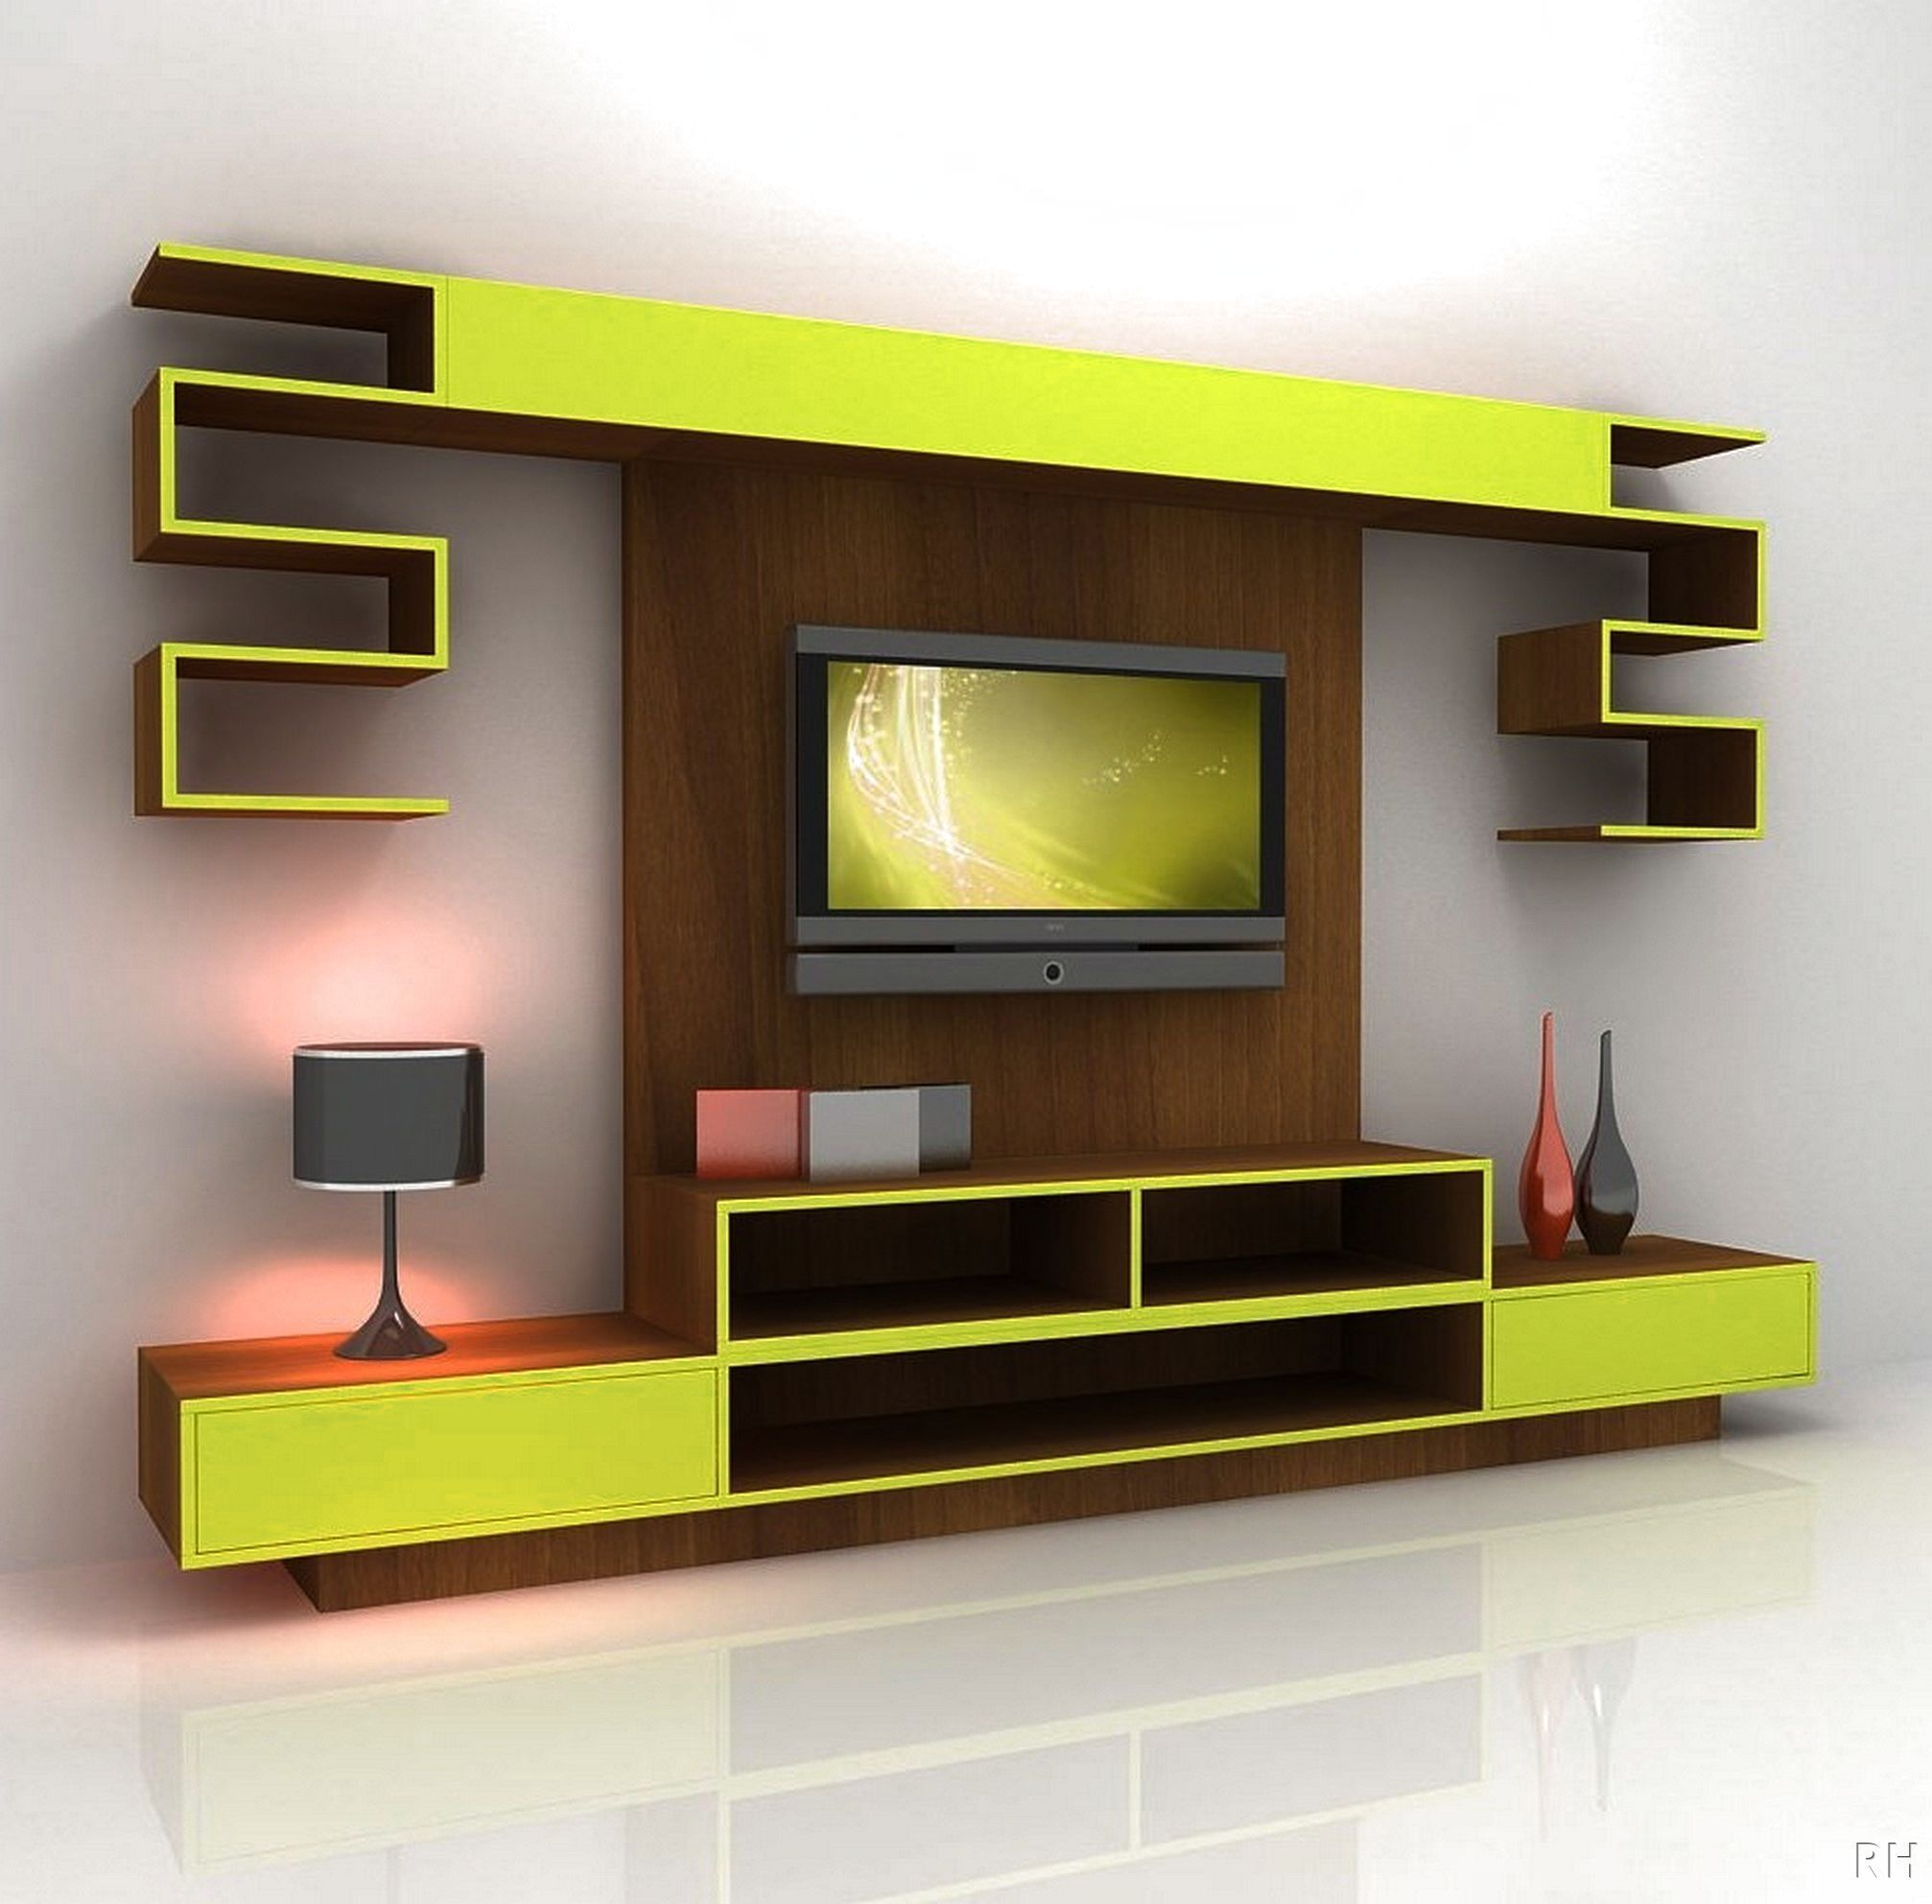 Lcd Tv Wall Unit Design Ideas httpultimaterpmodus Pinterest